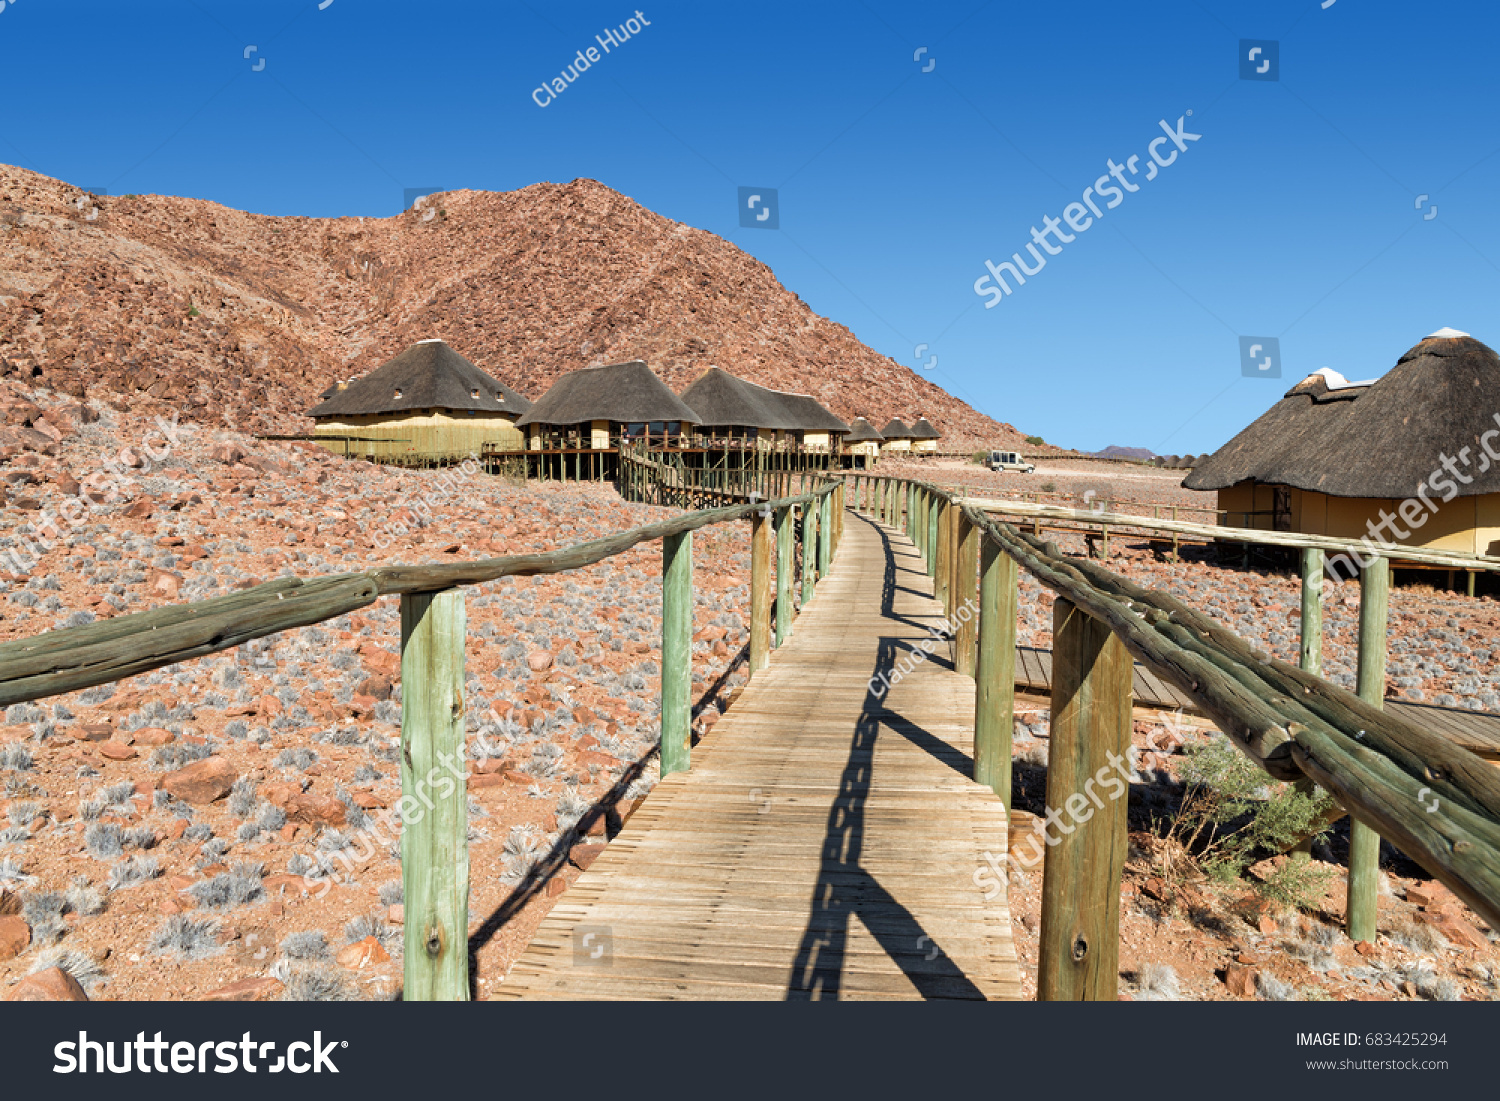 SESRIEM, NAMIBIA - SEPTEMBER 04, 2015: The Sossus Dune Lodge is the only lodge inside the Namib-Naukluft National Park close to Sossusvlei. All chalets are linked to the main hub by raised walkways.